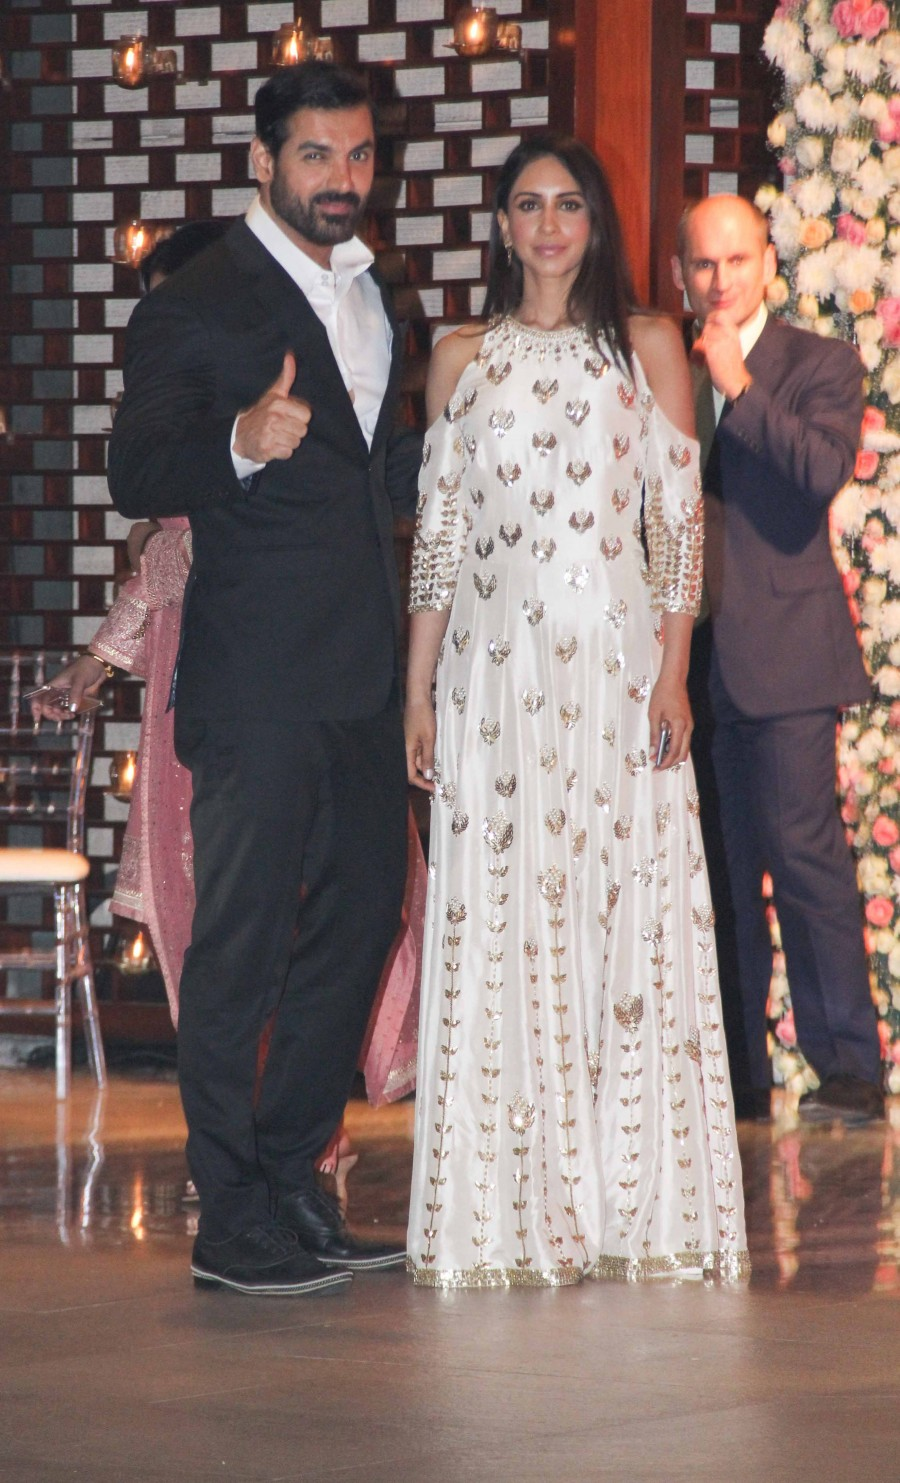 Sachin Tendulkar,John Abraham,Jackie Shroff,Ambani,Ambani bash,Ambani pre-wedding bash,Ambani pre-wedding bash pics,Ambani pre-wedding bash images,Ambani pre-wedding bash photos,Ambani pre-wedding bash stills,Ambani pre-wedding bash pictures